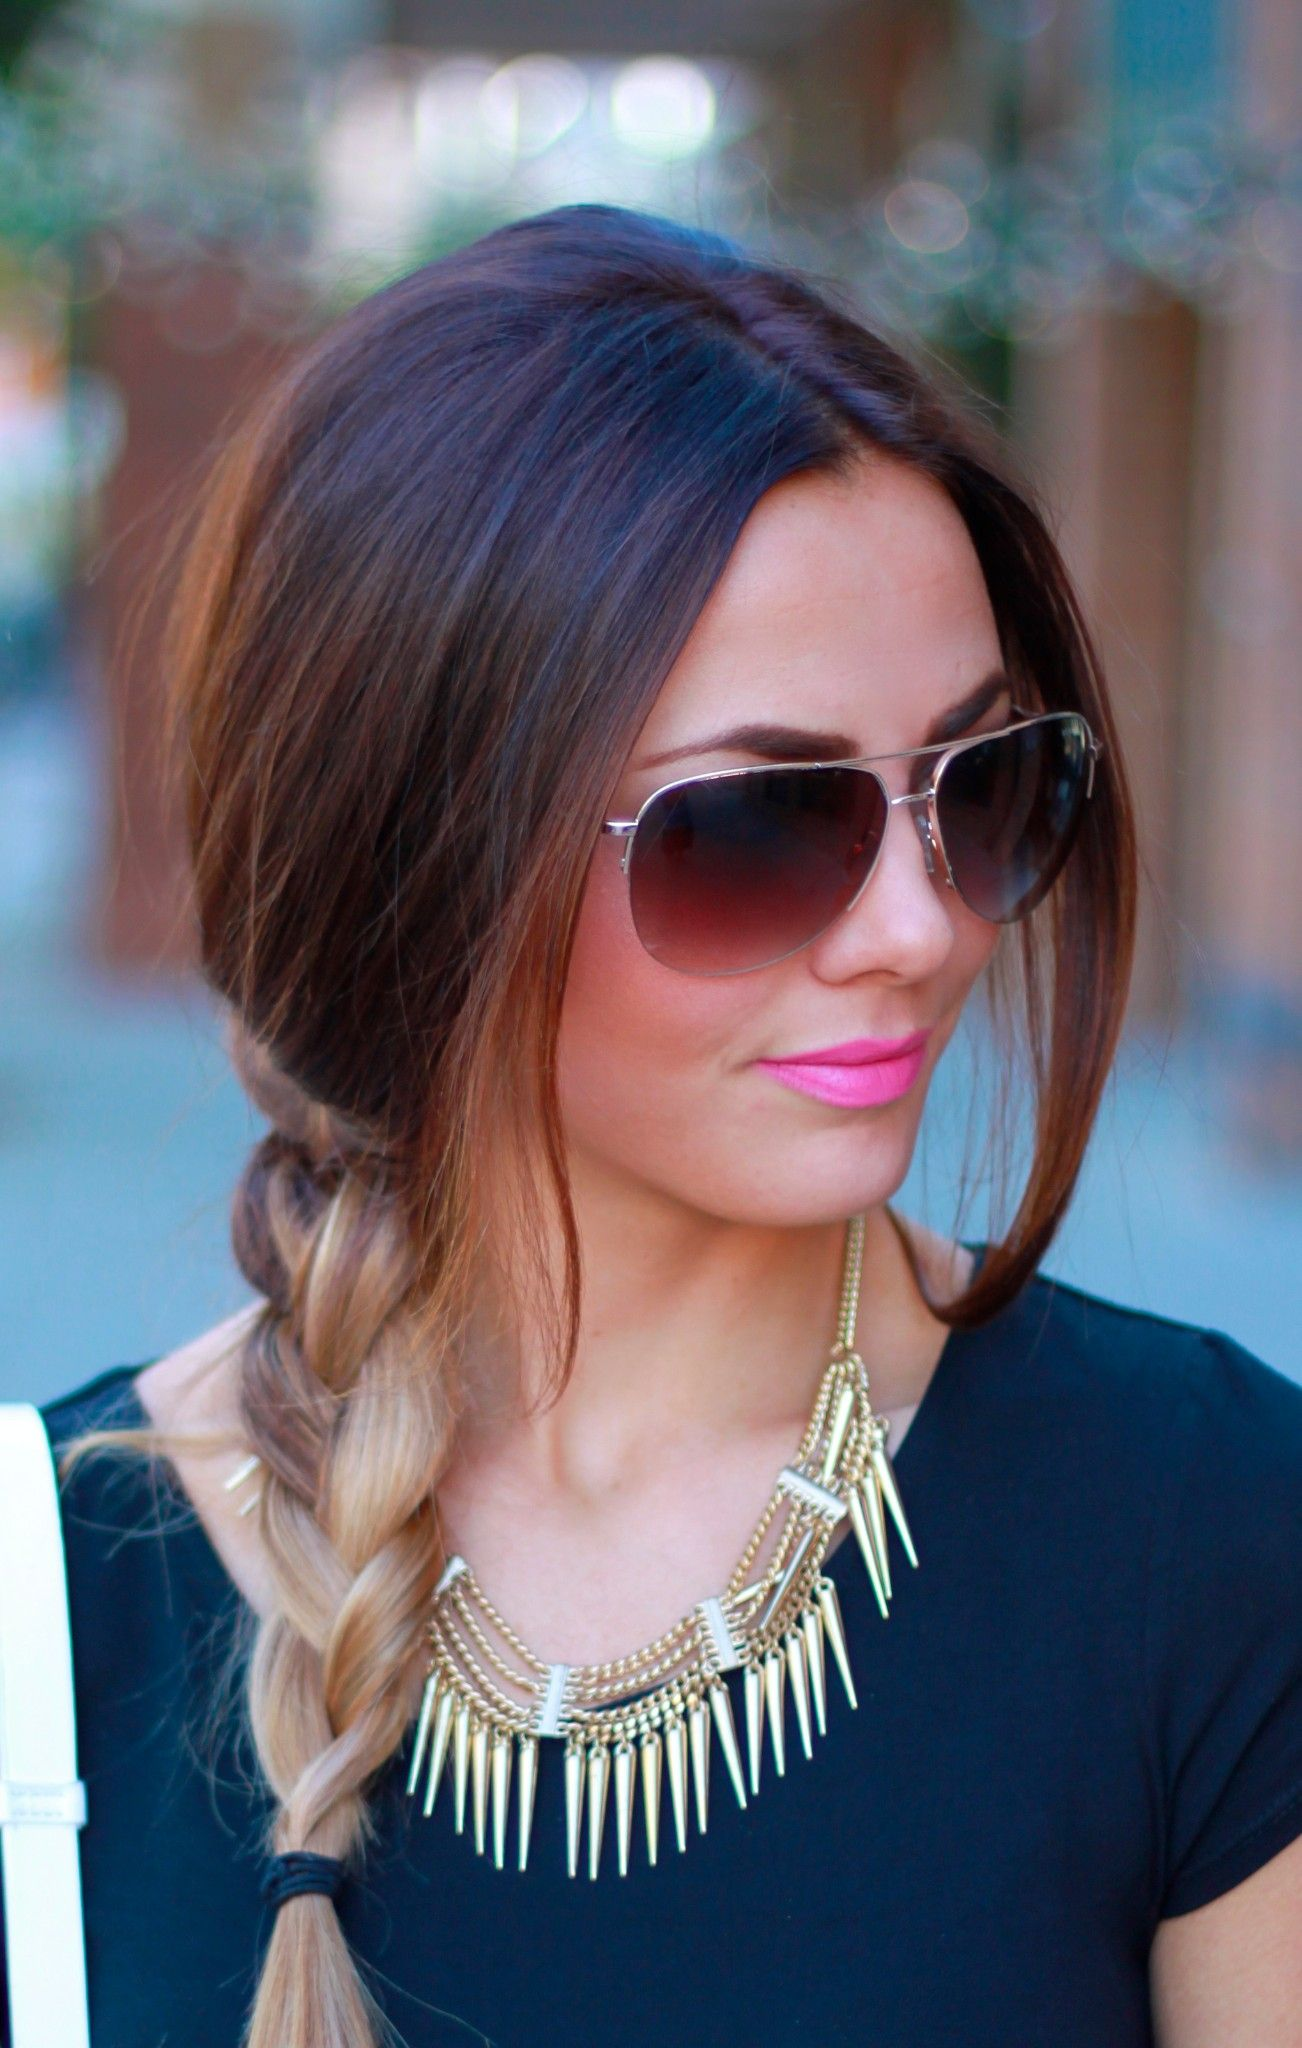 Beauty Street Style: Side Braids andSunglasses pictures